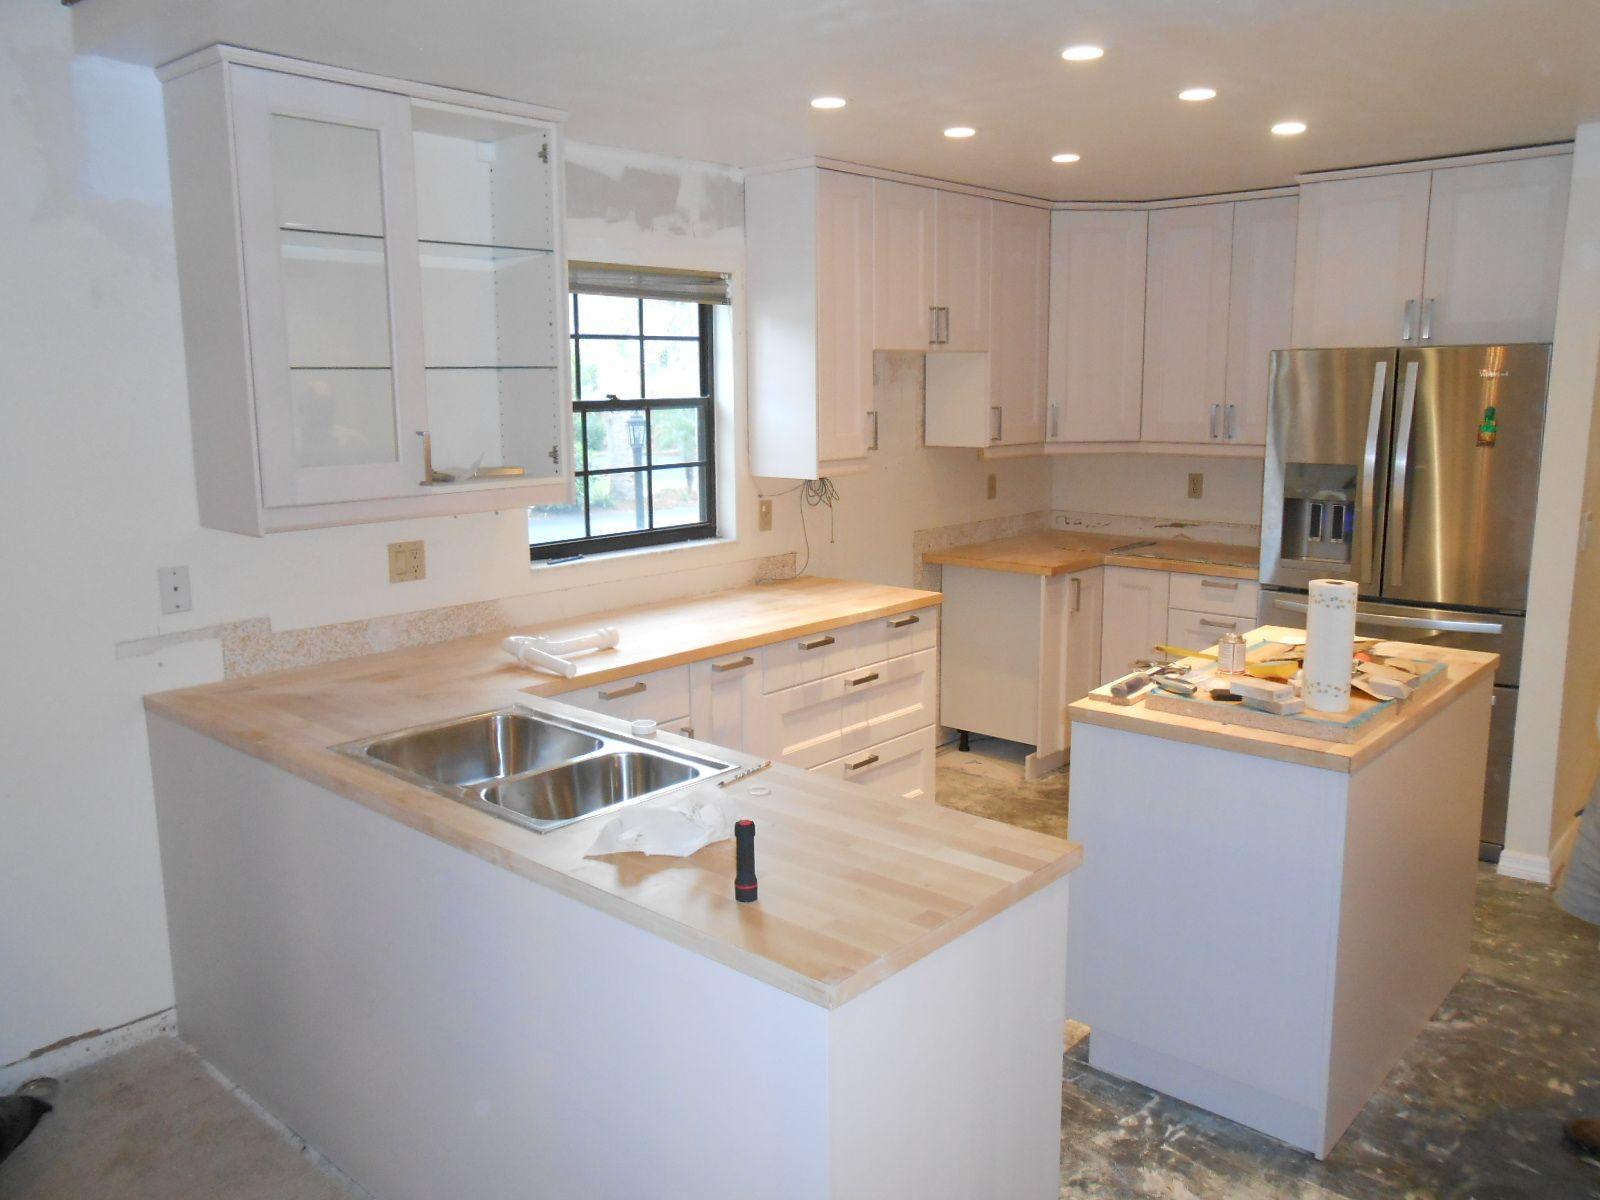 Kitchen Kitchen Cabinets Estimate Olympus Digital Camera From Cool Kitchen Cabinet Cost Inspiration